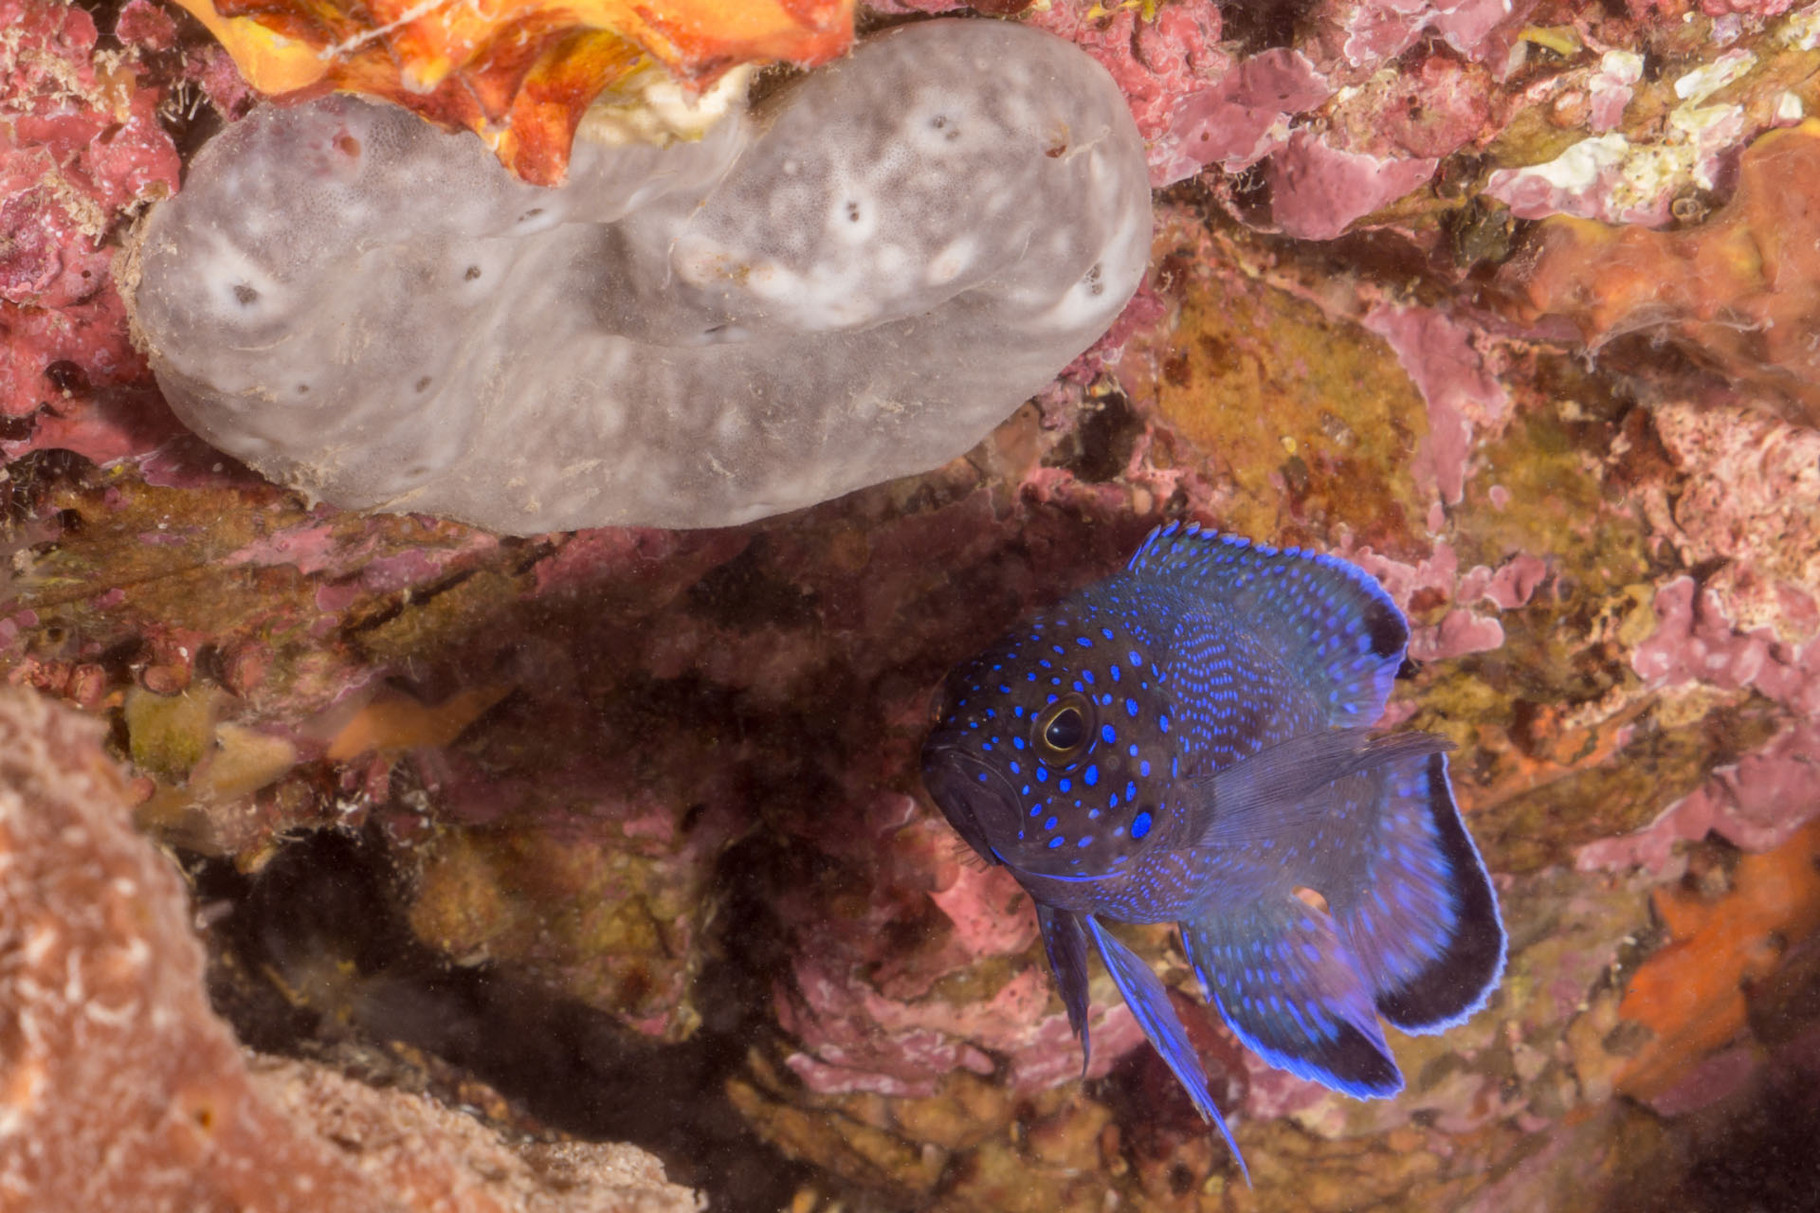 Southern Blue Devil, Second Bay